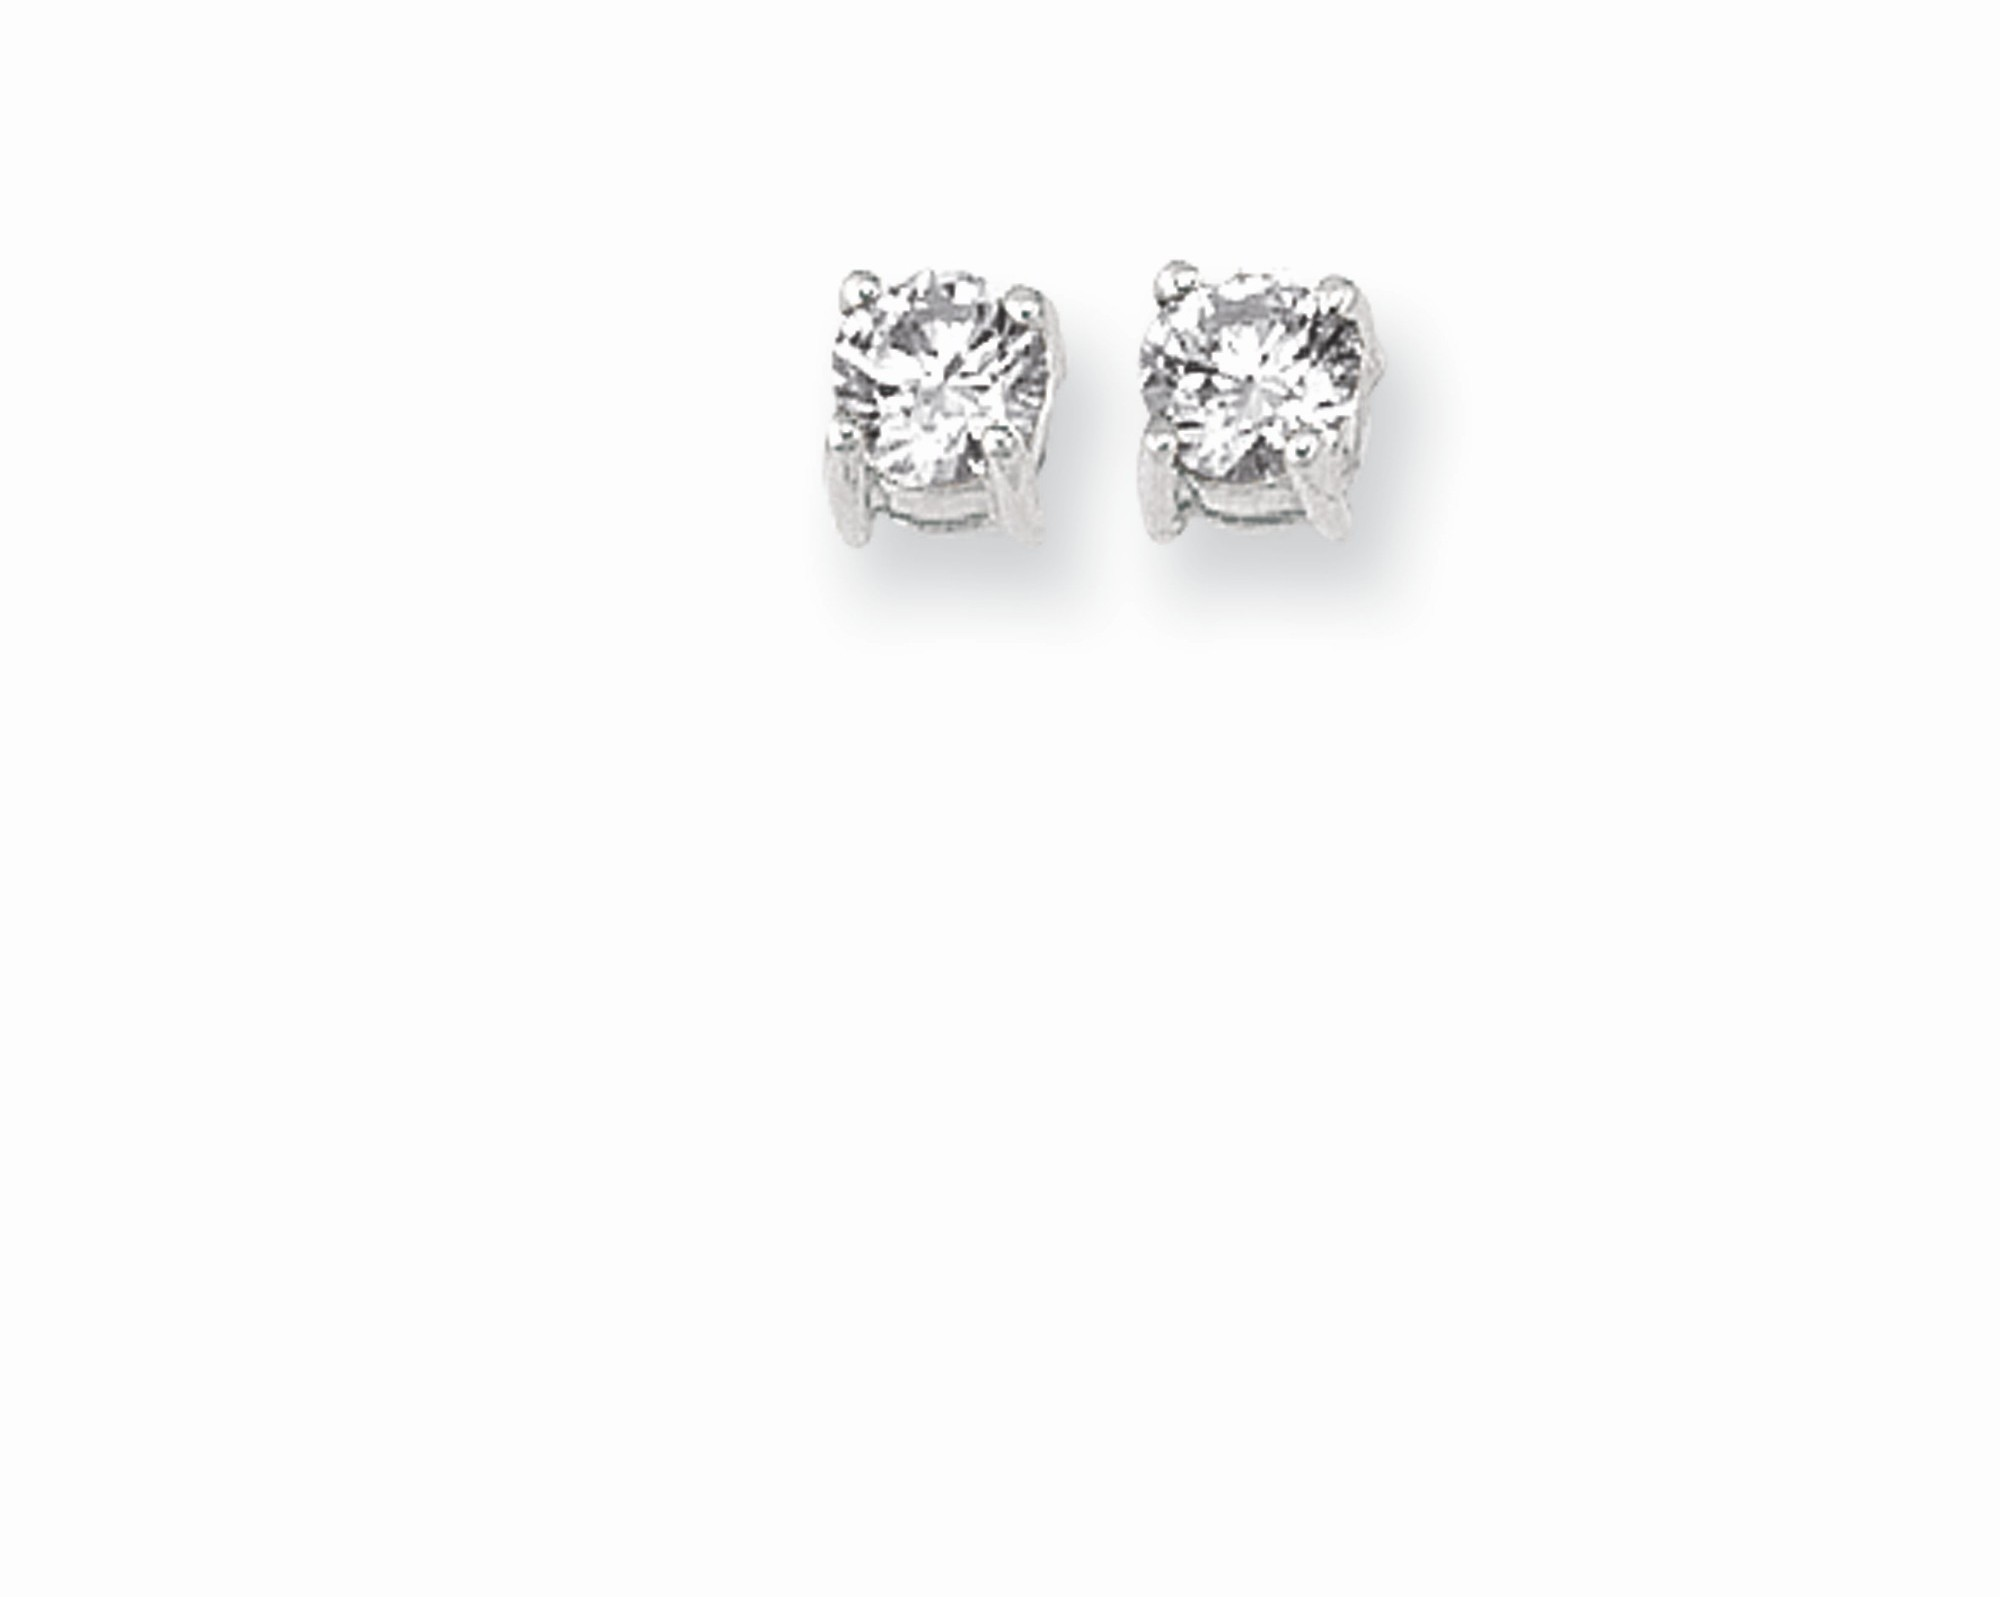 "Silver Rhodium Plated Shiny 3.0mm (1/8"") Clear Round Faceted Cubic Zirconia (CZ) Stud Earrings"